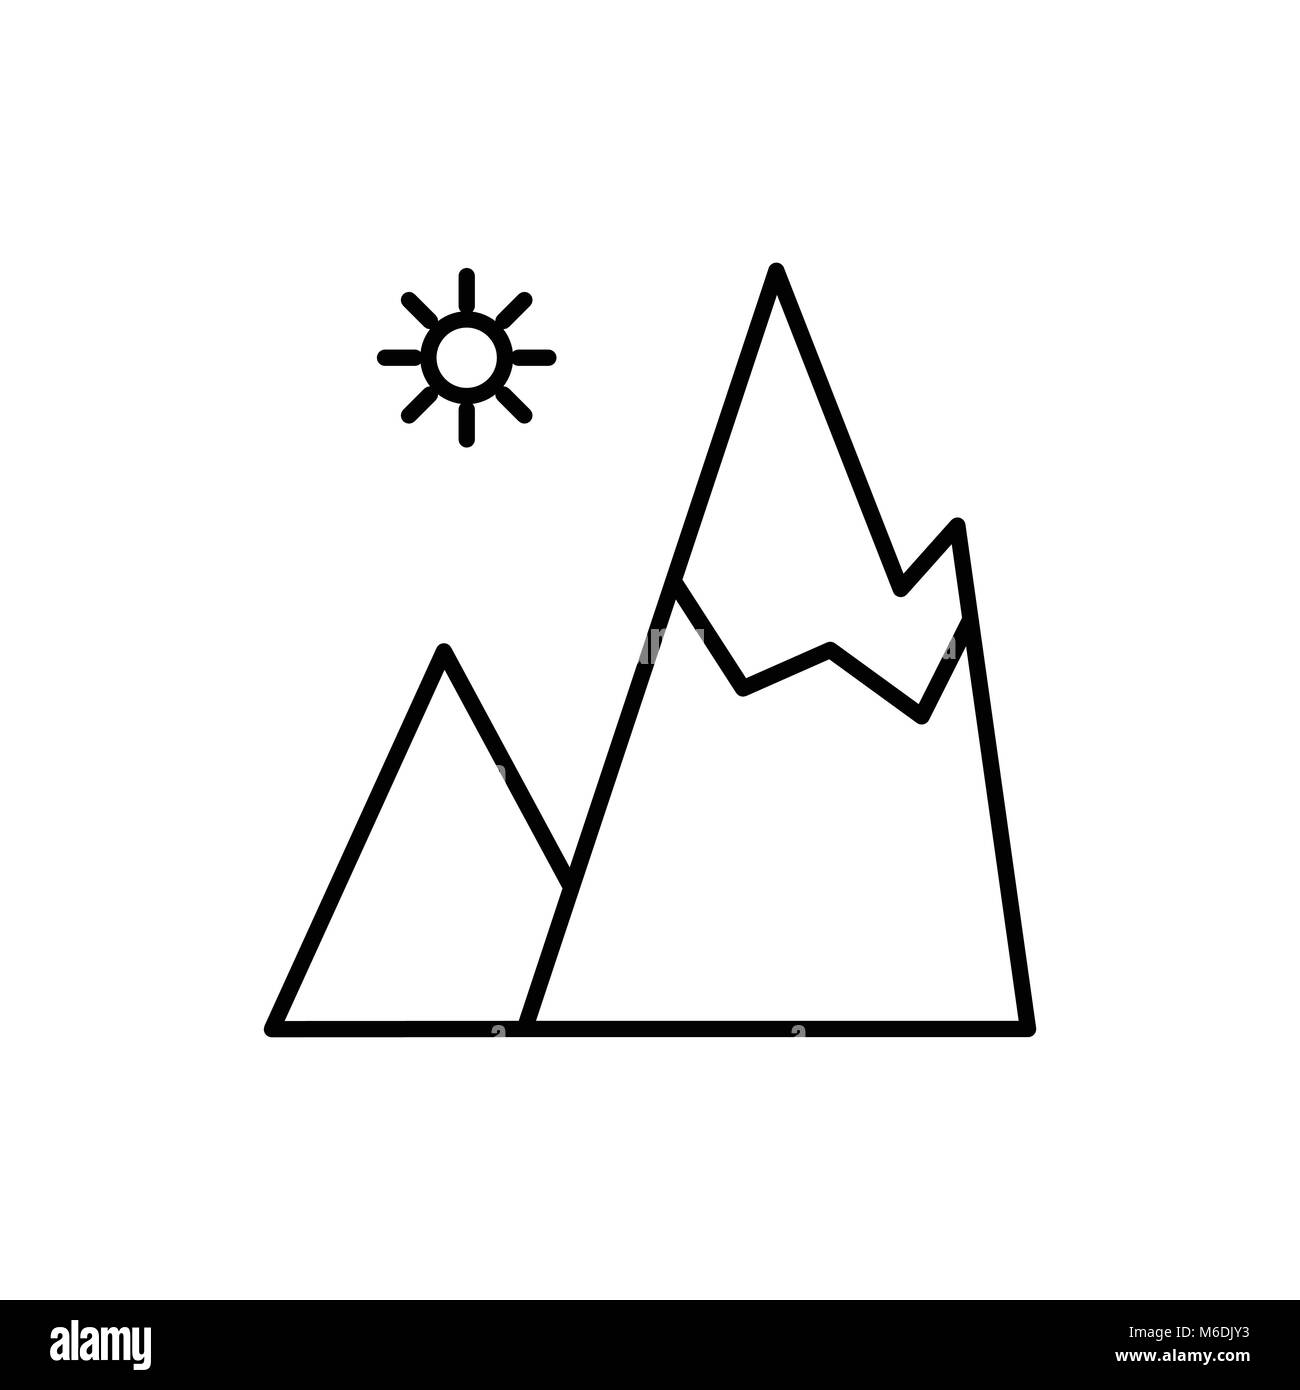 Daylight Mountain Adventure Thin Line Icon Symbol Vector Illustration Graphic Design - Stock Vector